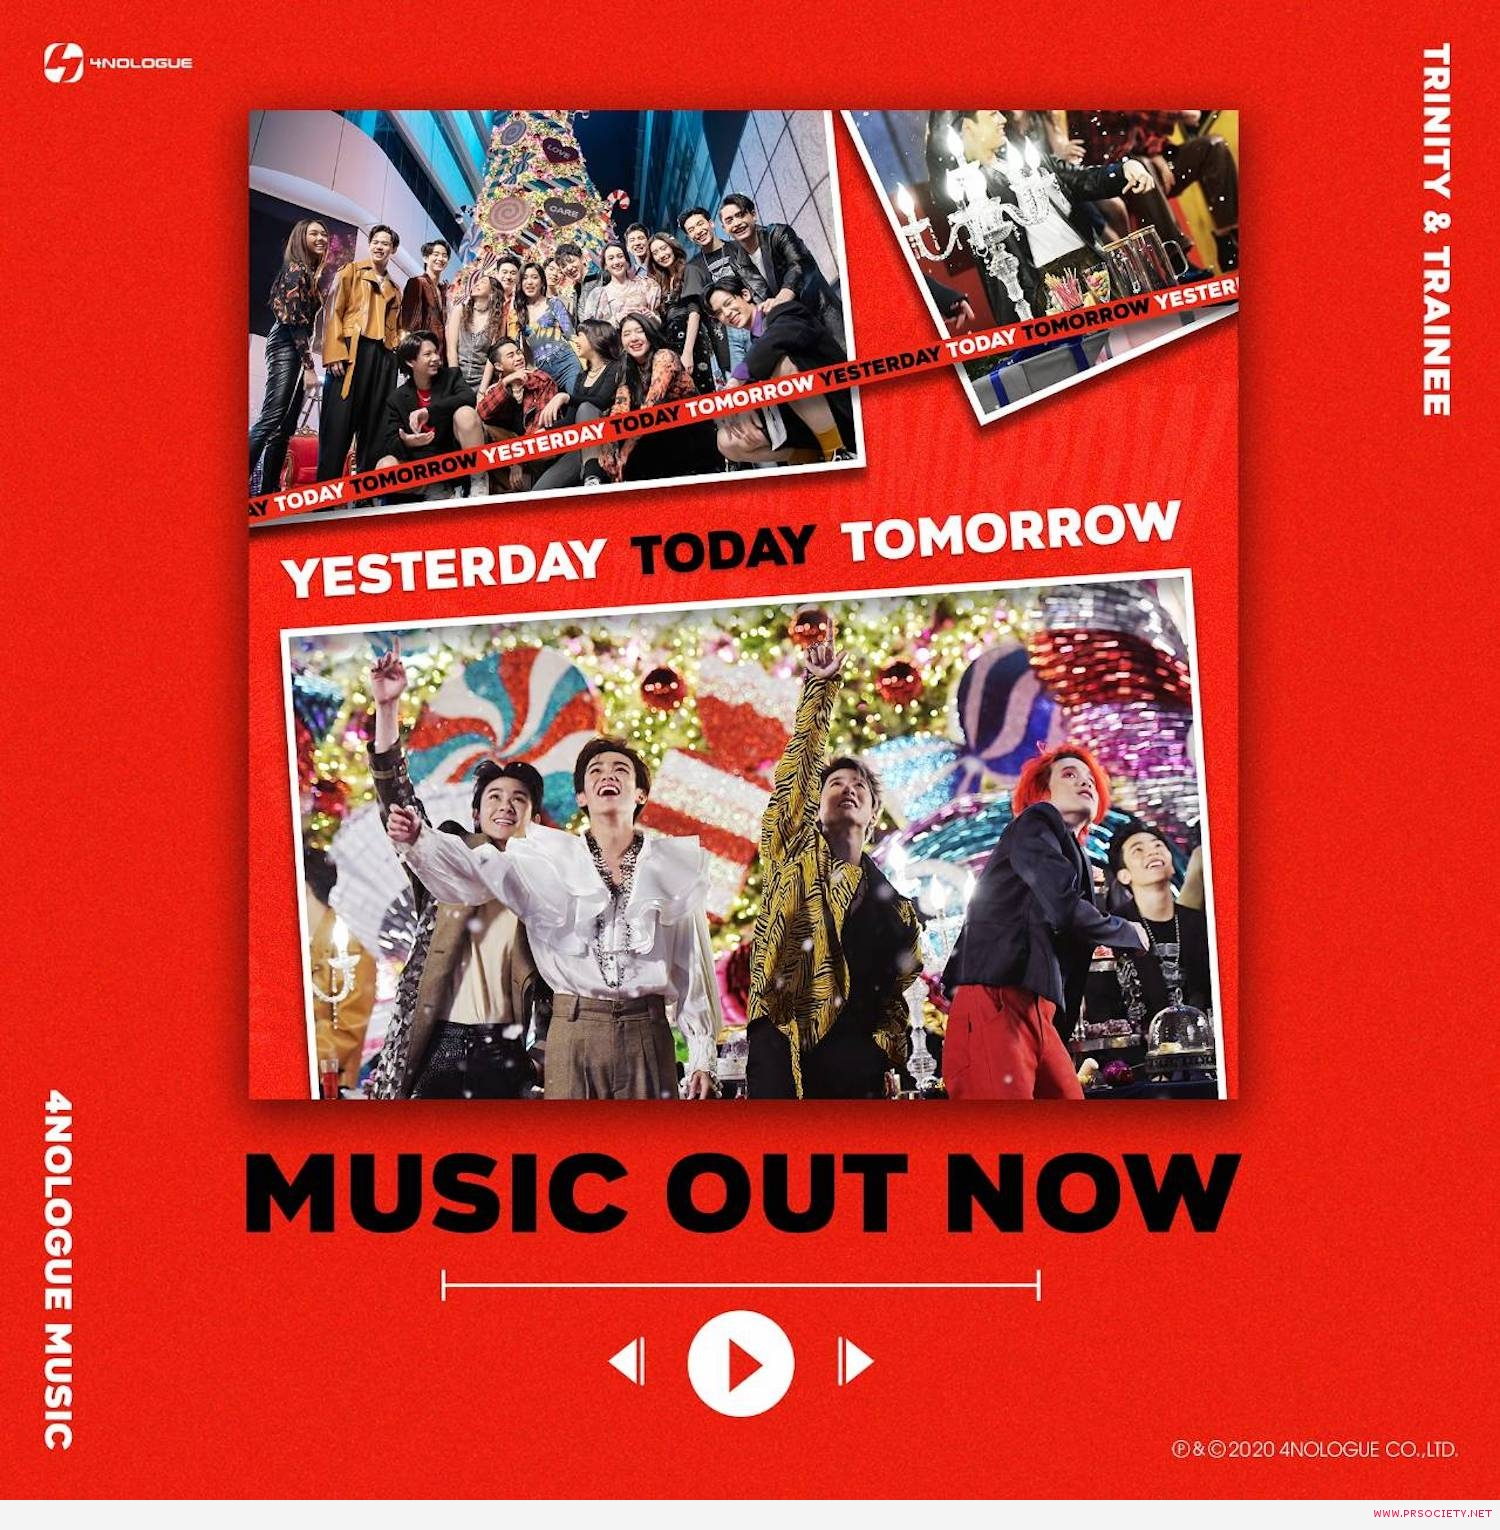 MUSIC OUT NOW